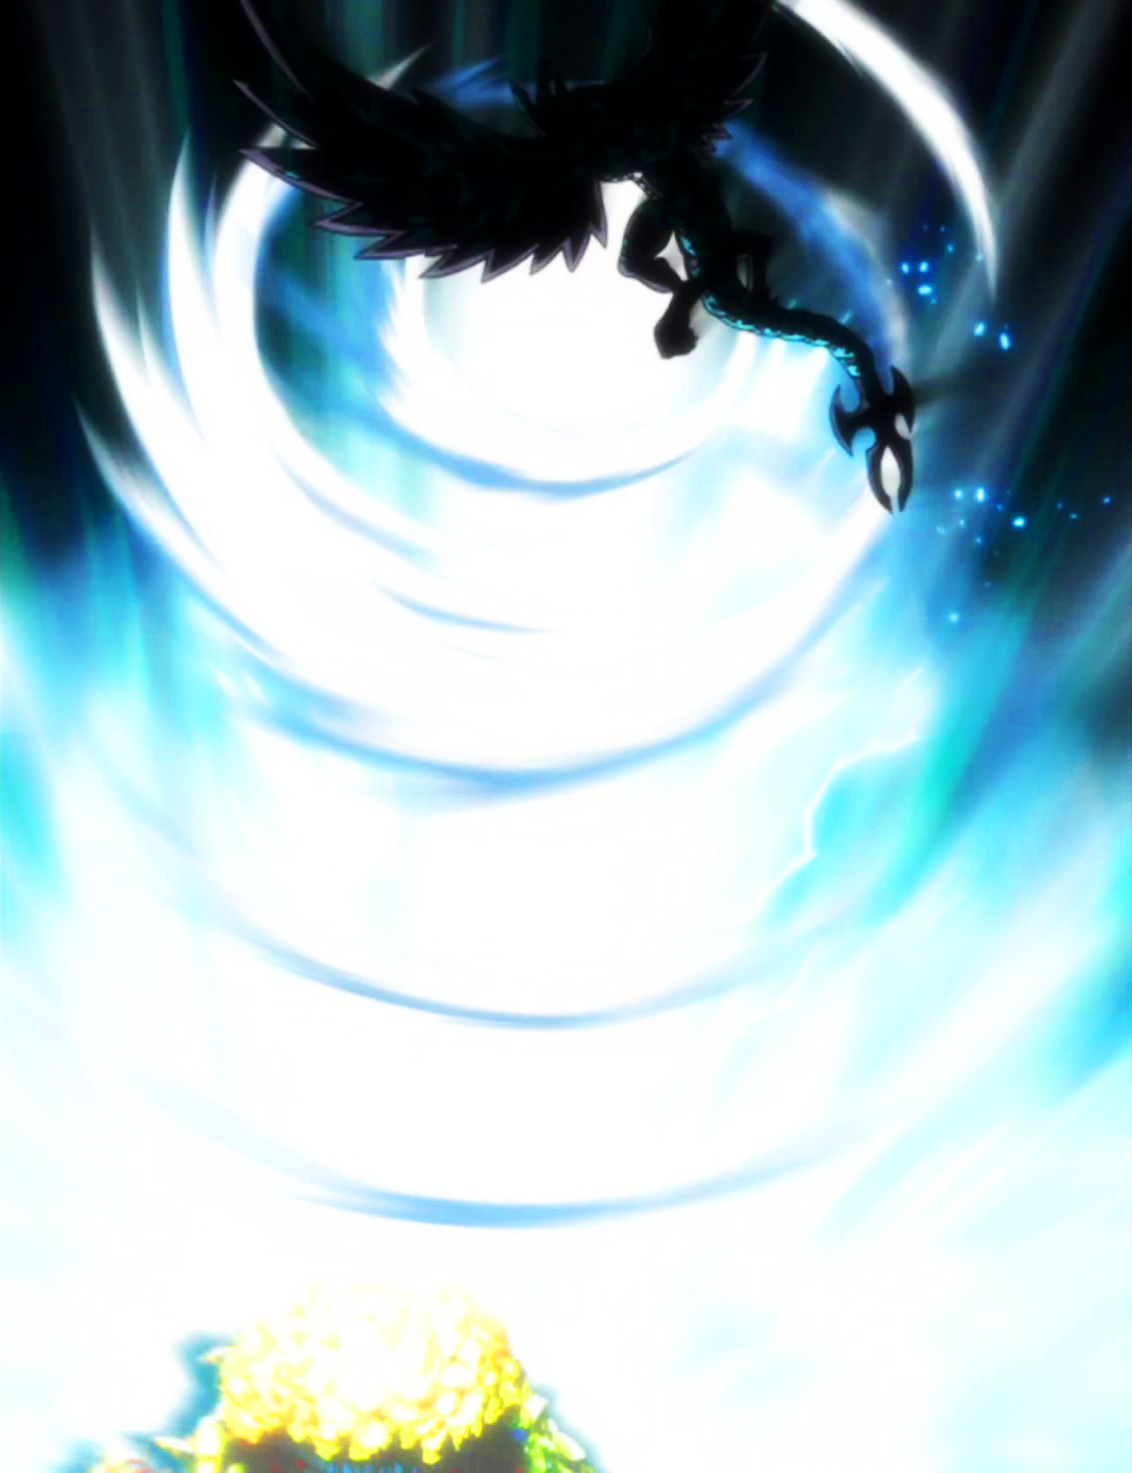 http://img3.wikia.nocookie.net/__cb20120317120931/fairytail/images/4/46/Acnologia_Breath_Attack.jpg